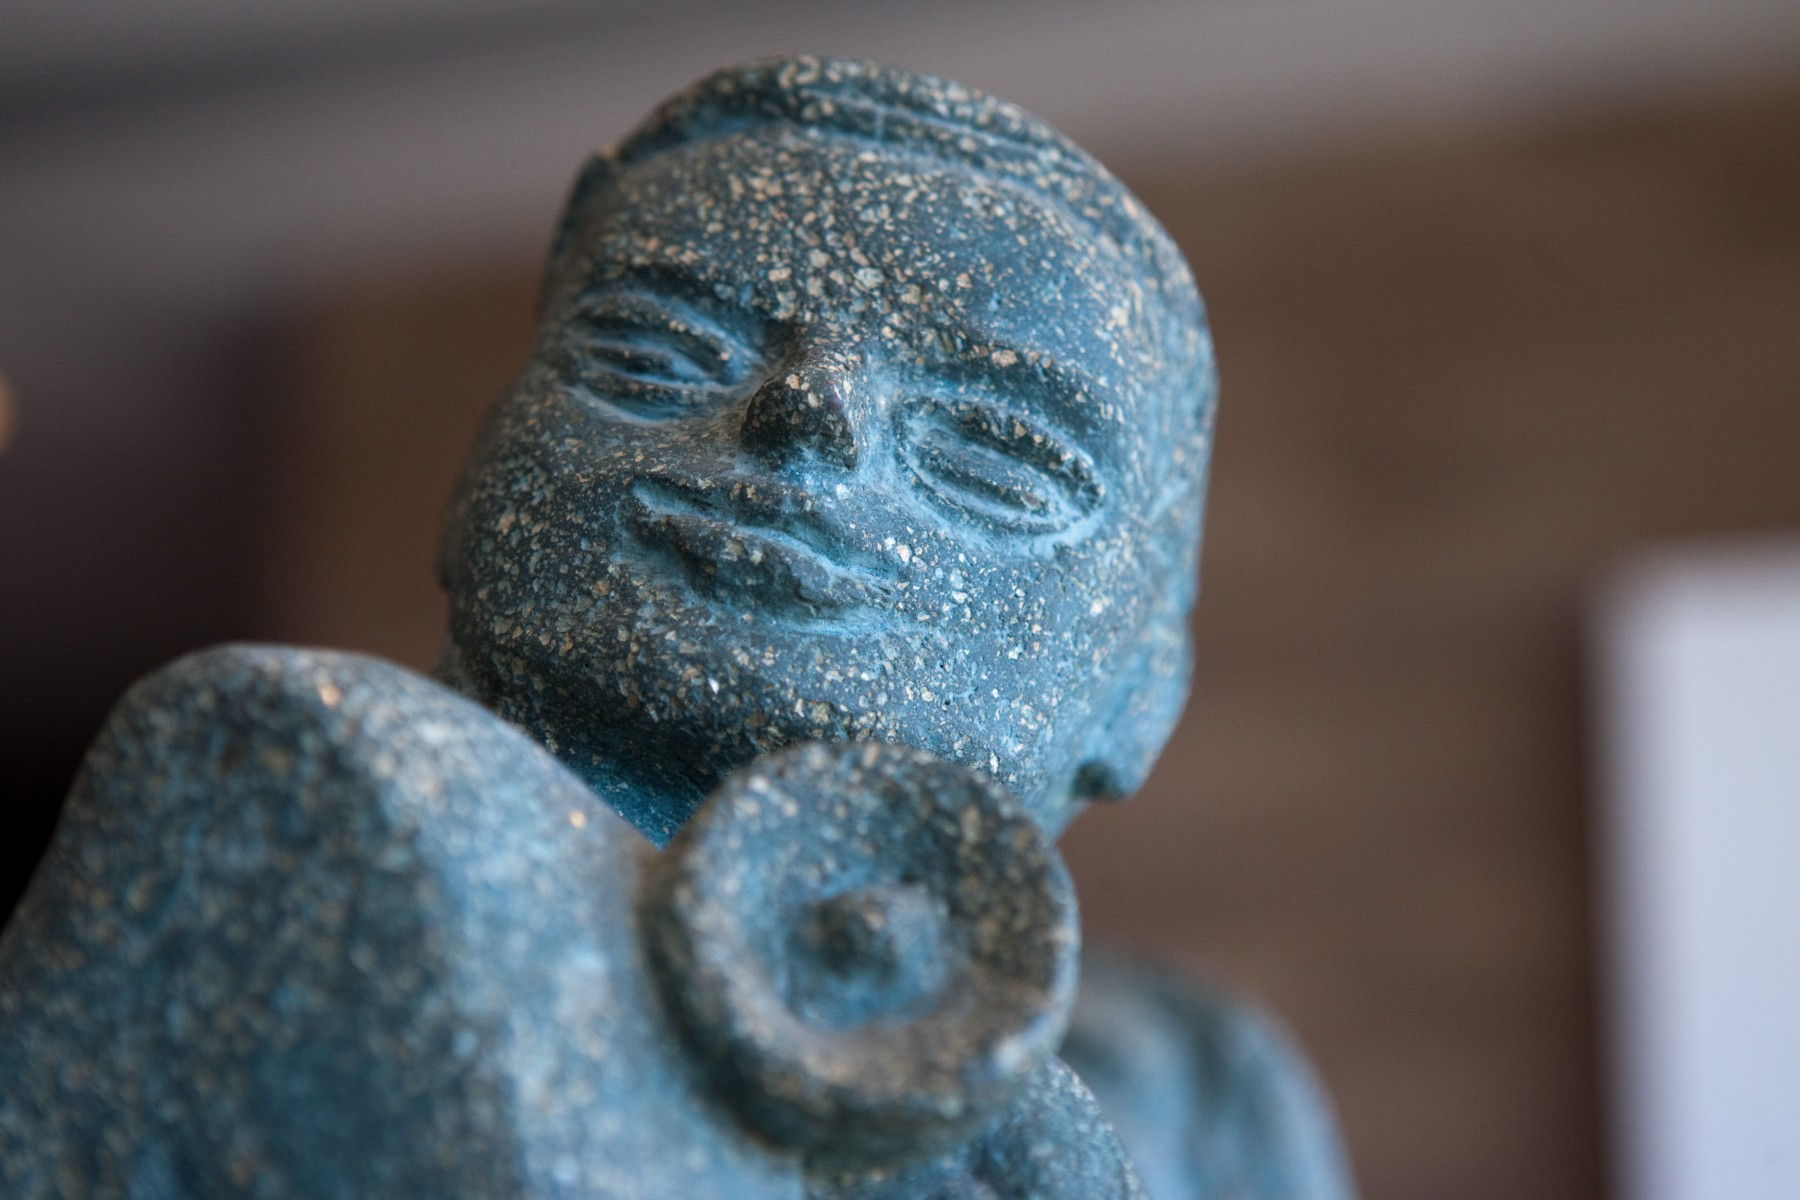 blue speckled face sculpture with blurry background